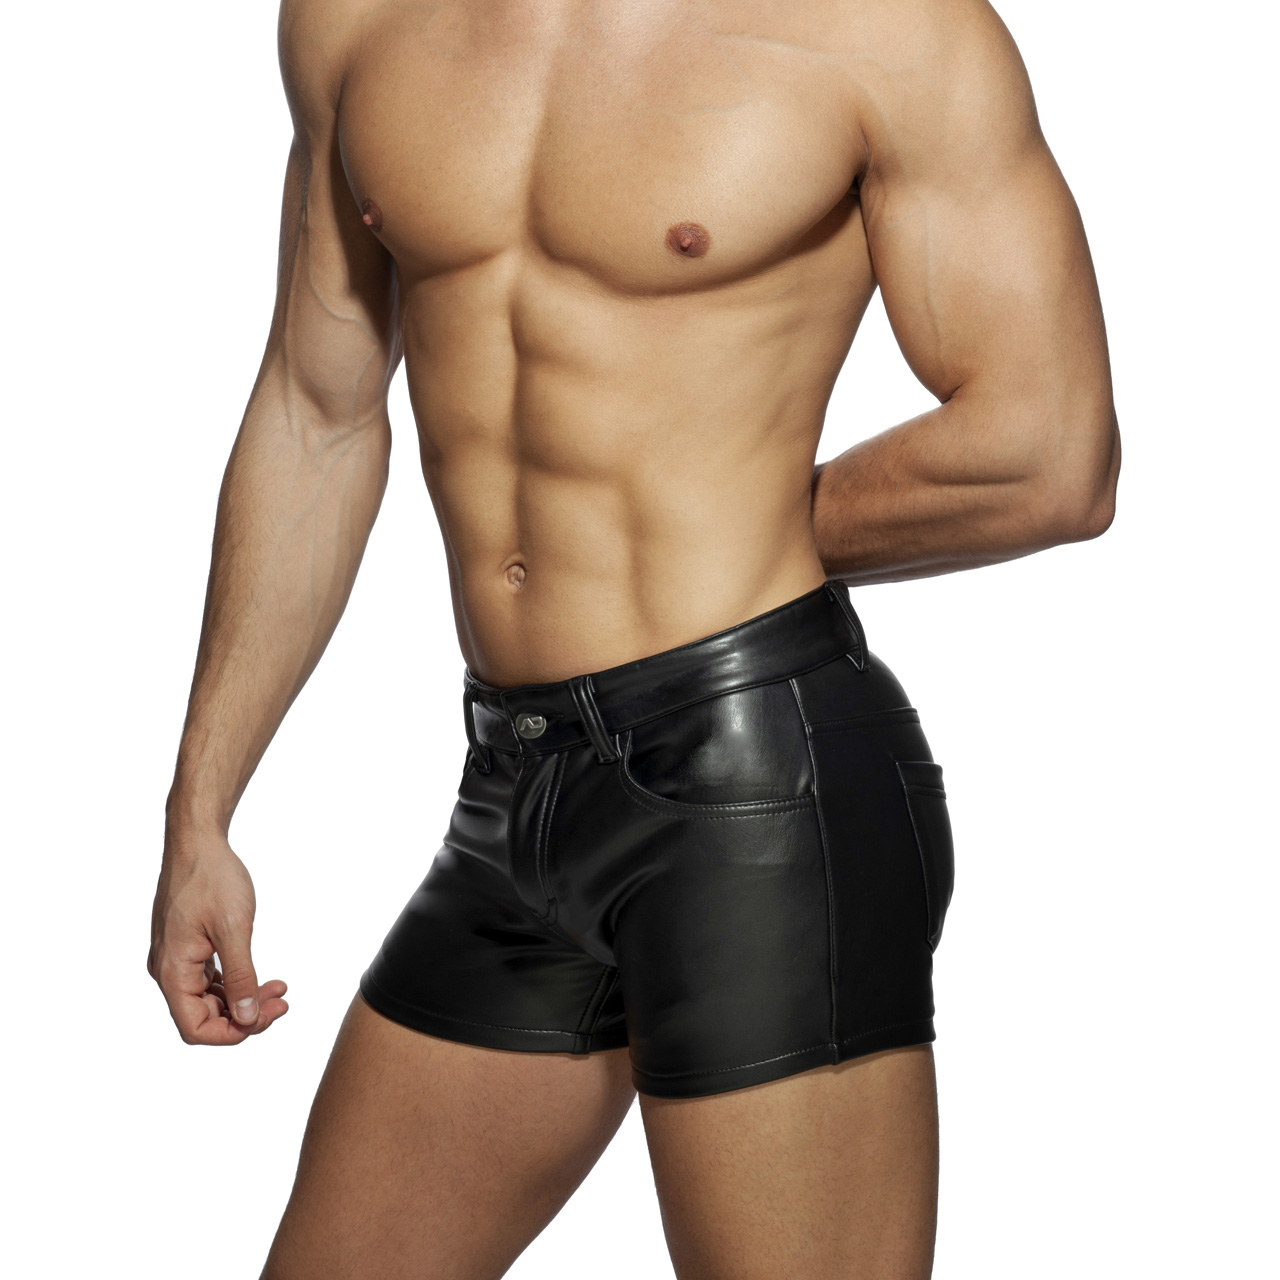 FETISH SHORTS BLACK 10